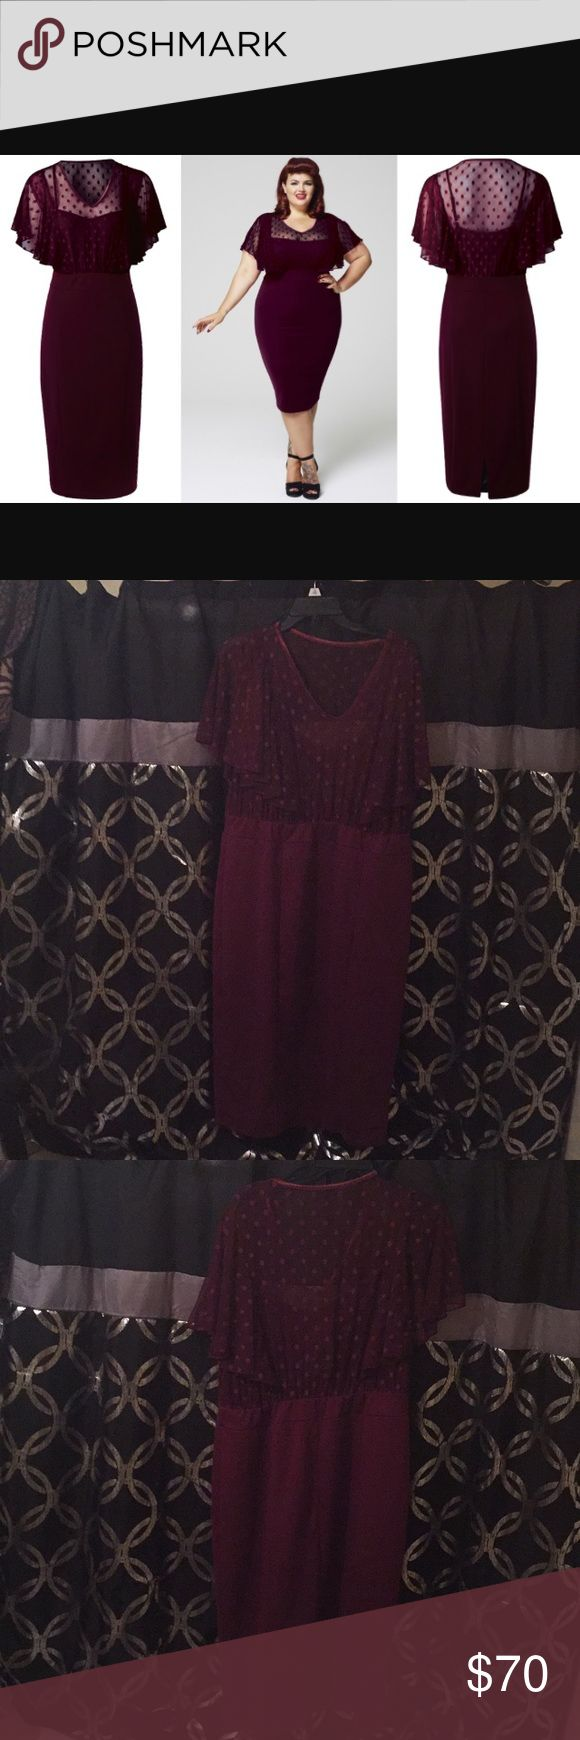 Scarlett & Jo London dress Brand new with tags maroon colored pencil dress. Size 22 Dresses